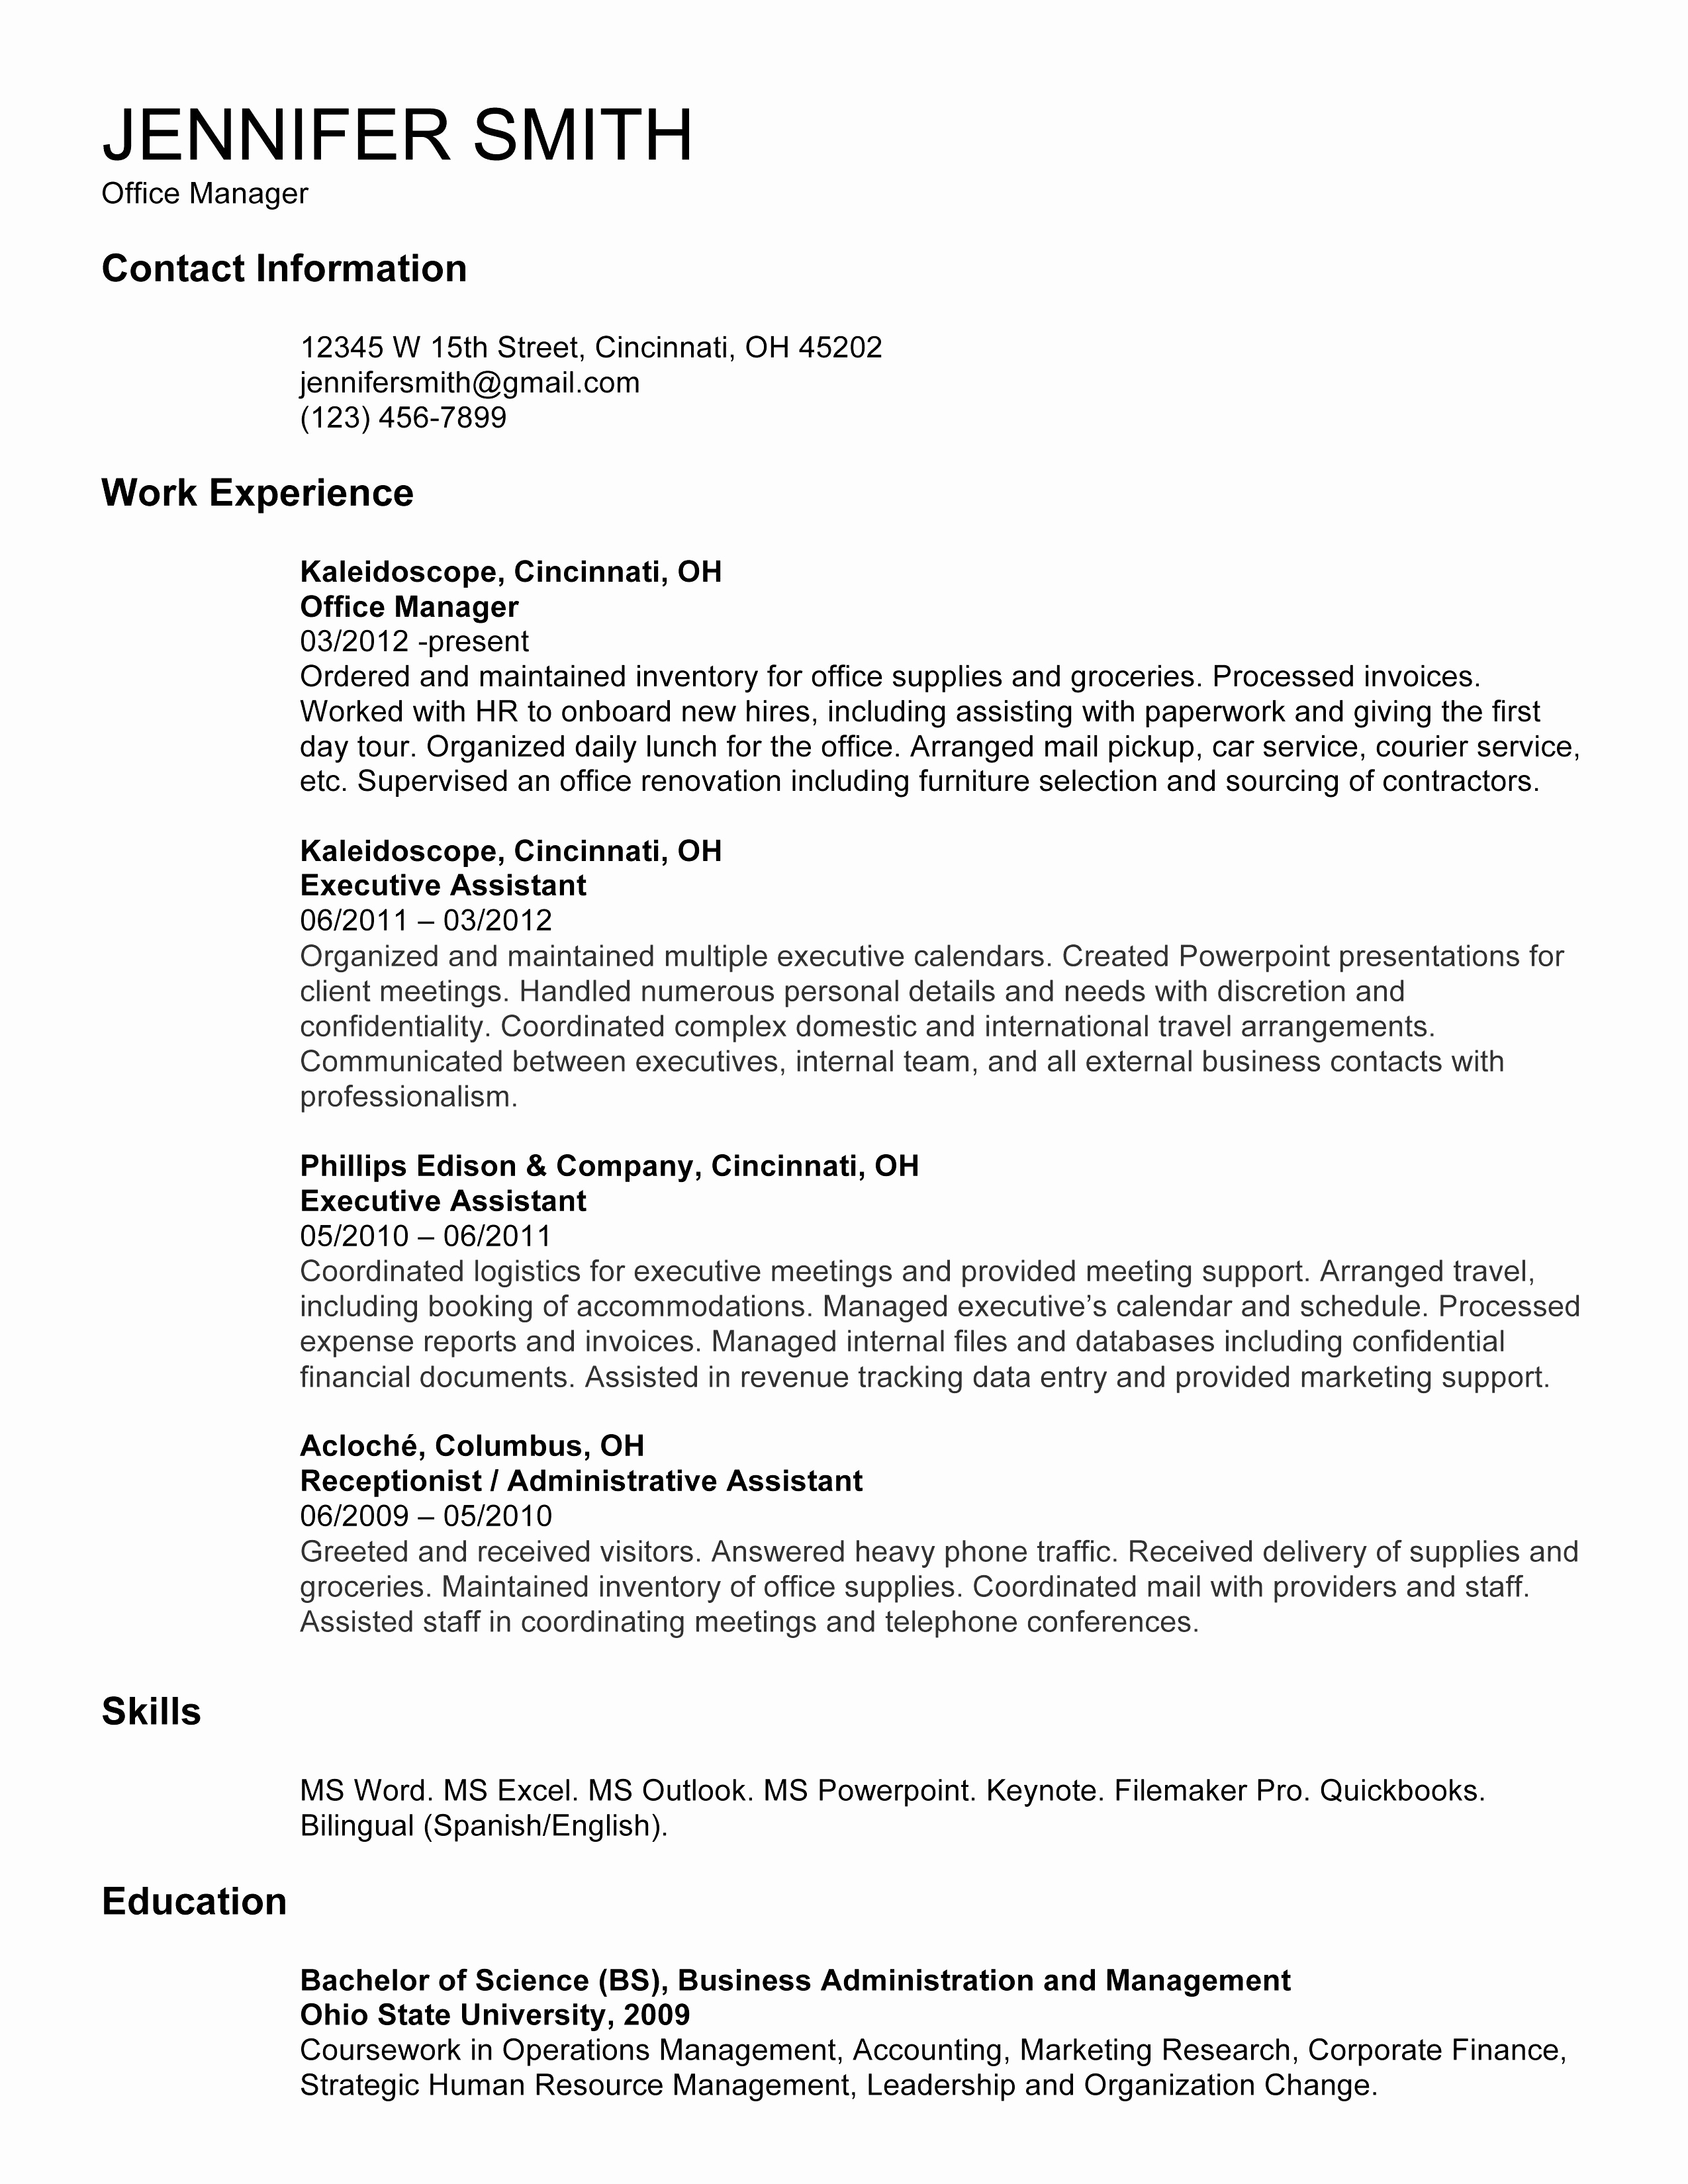 Real Estate Office Manager Resume - 20 New Real Estate Agent Resume Sample